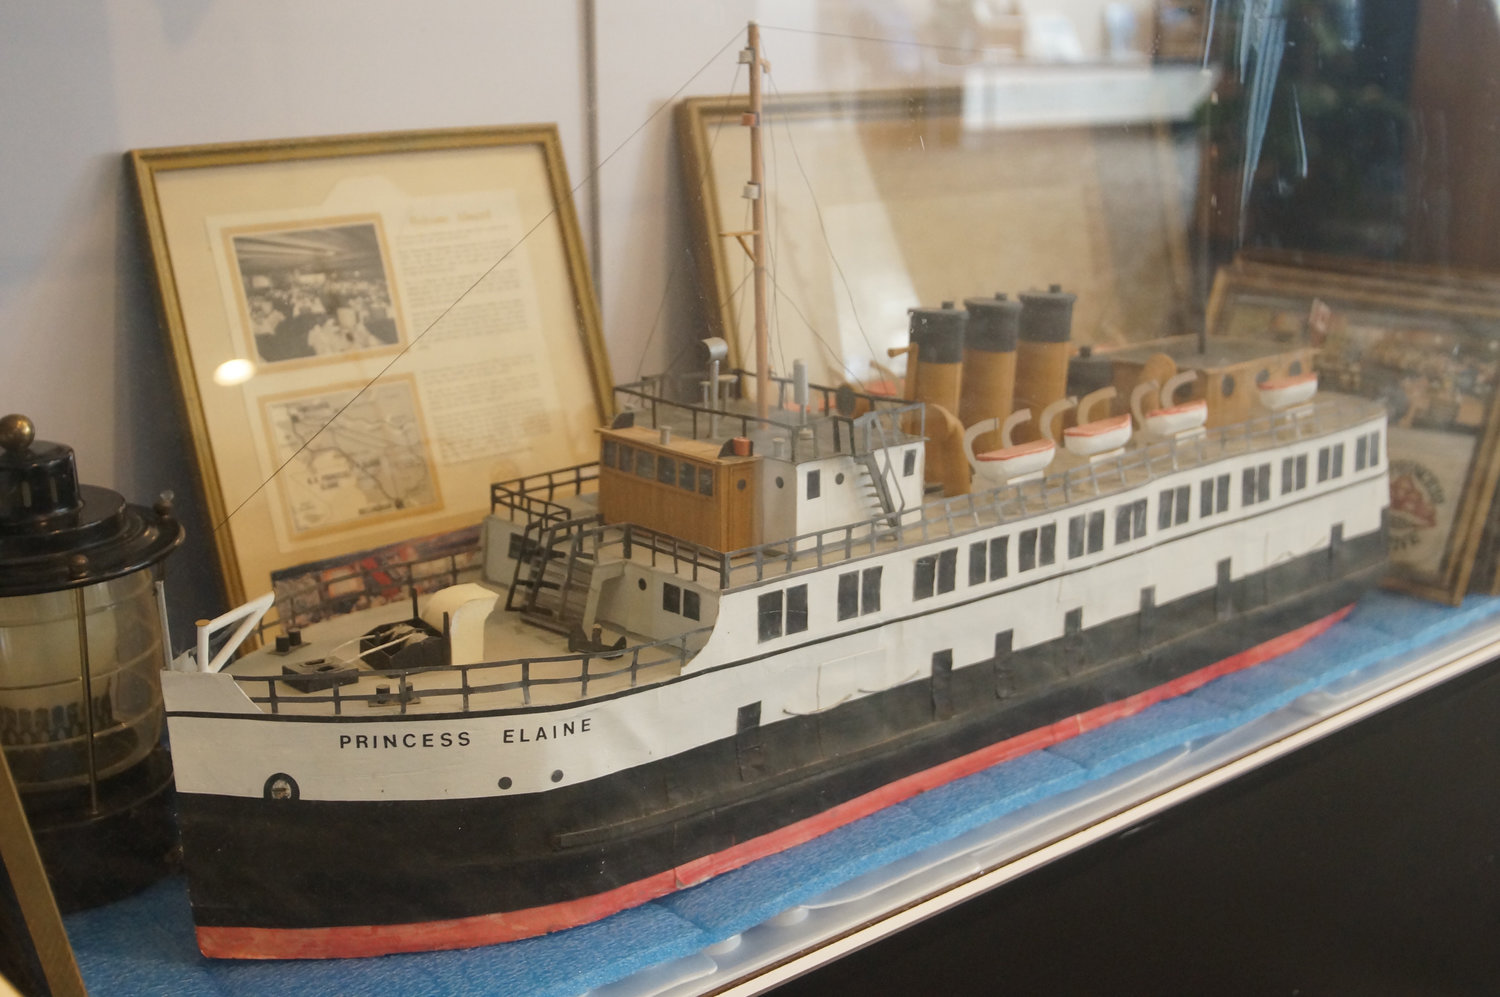 Dodd's model of Princess Elaine, a ferry boat that became a floating restaurant in Blaine in the 1960s.